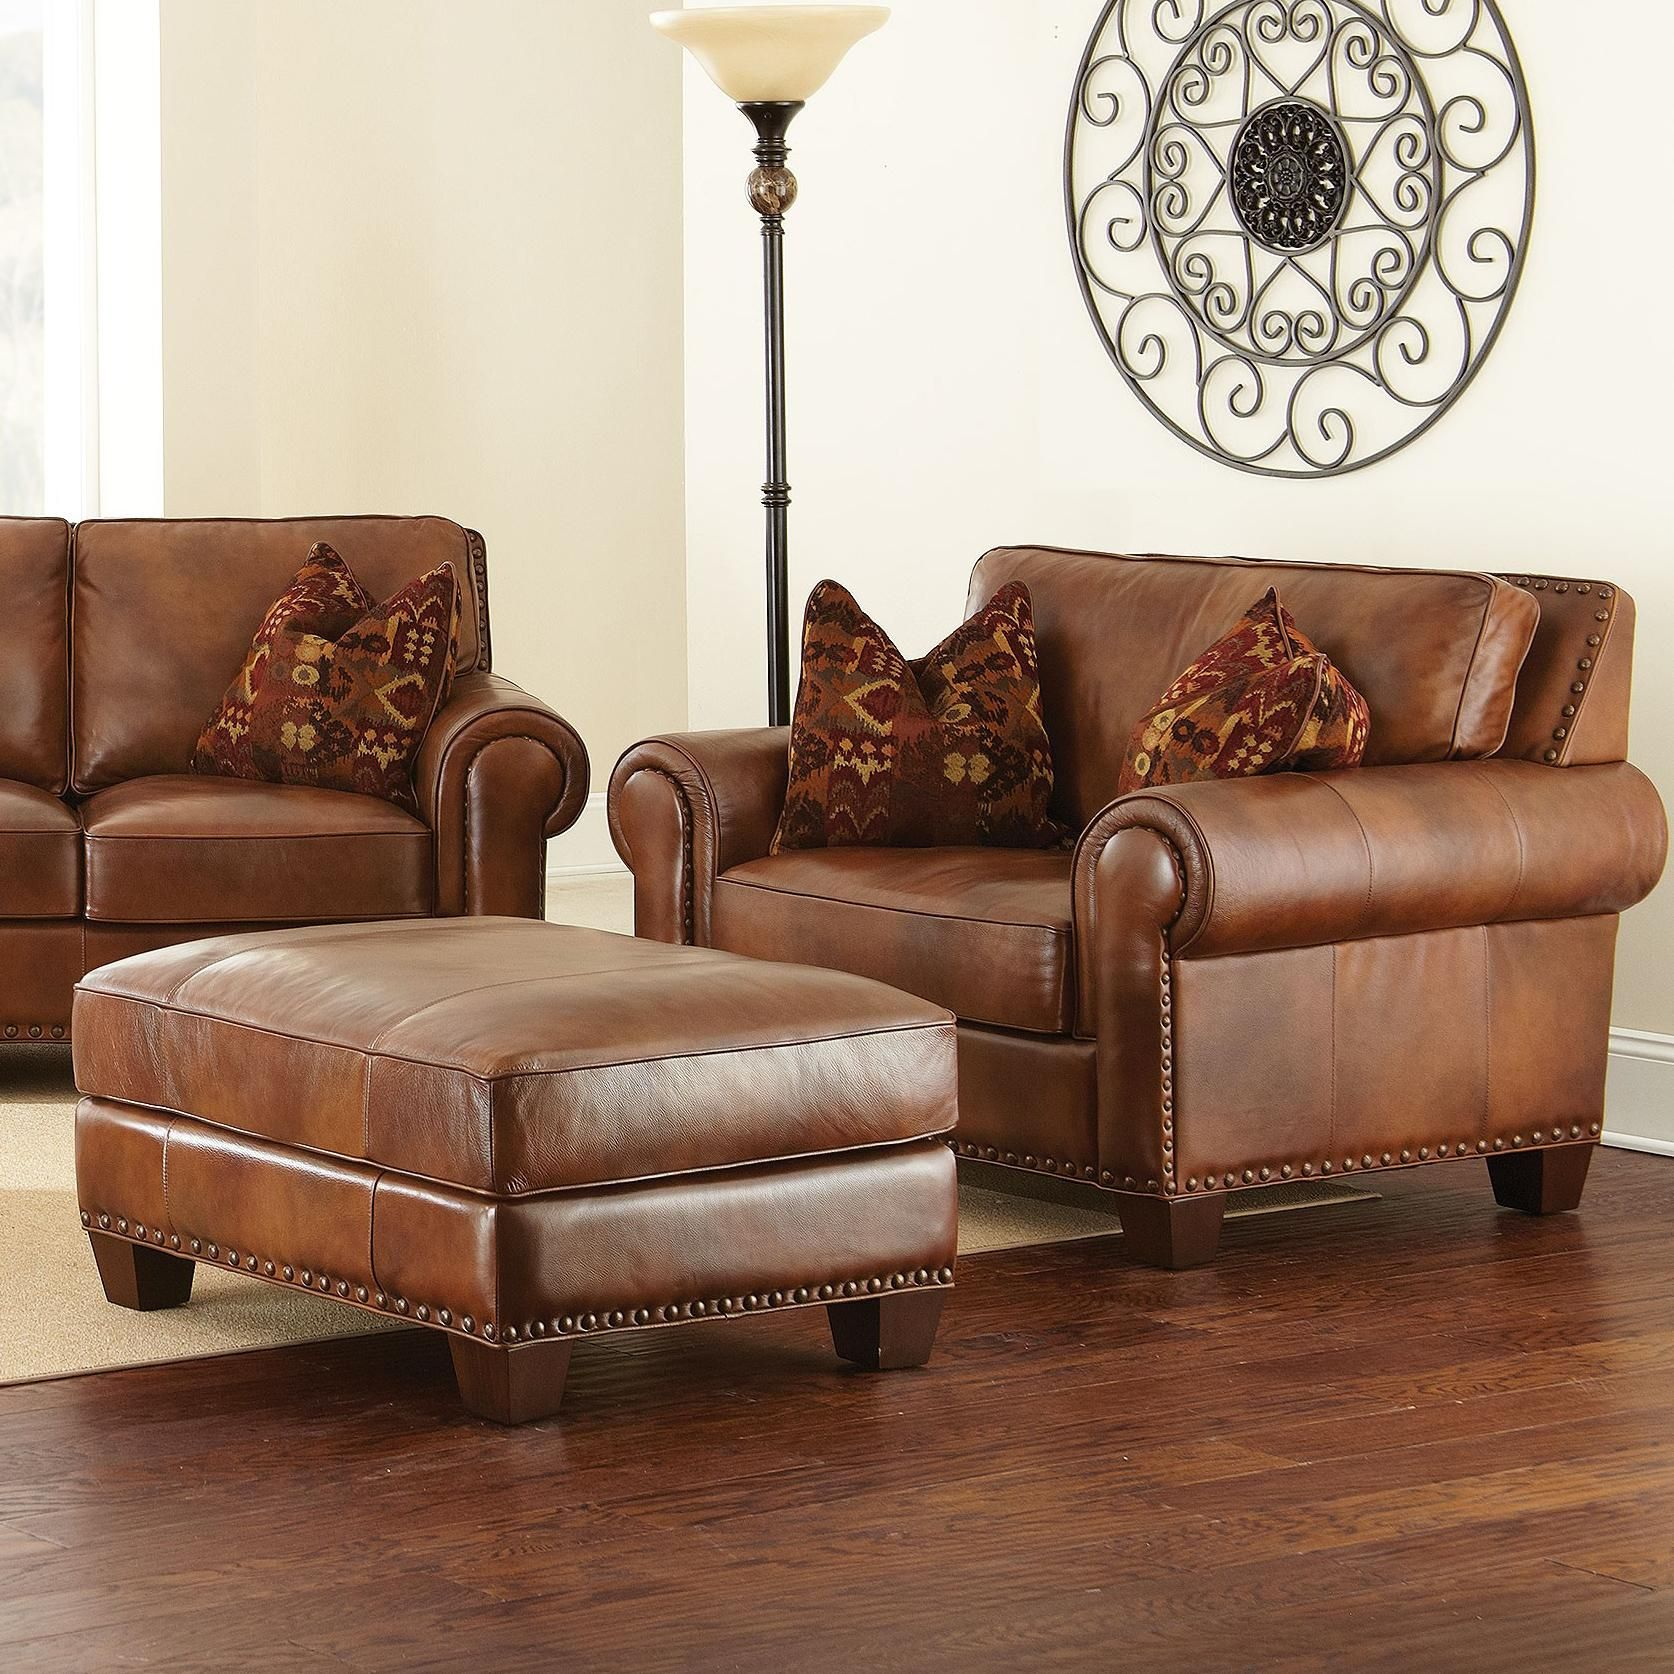 Steve Silver Silverado Chair And A Half With Ottoman And Nailhead